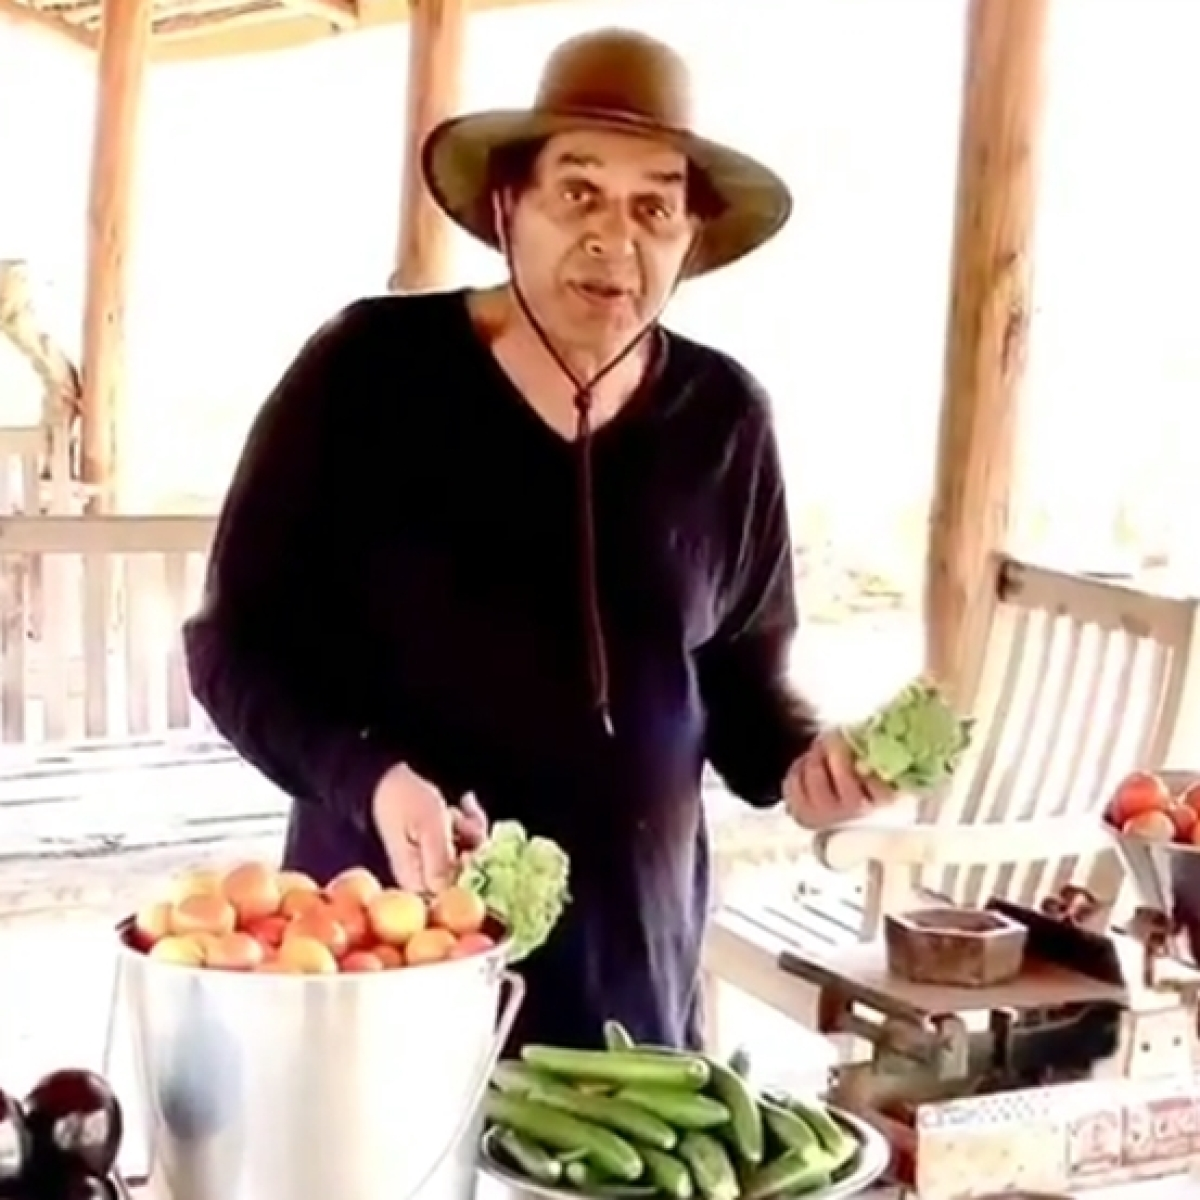 Farm to table: Dharmendra exhibits his vegetable harvest amid lockdown